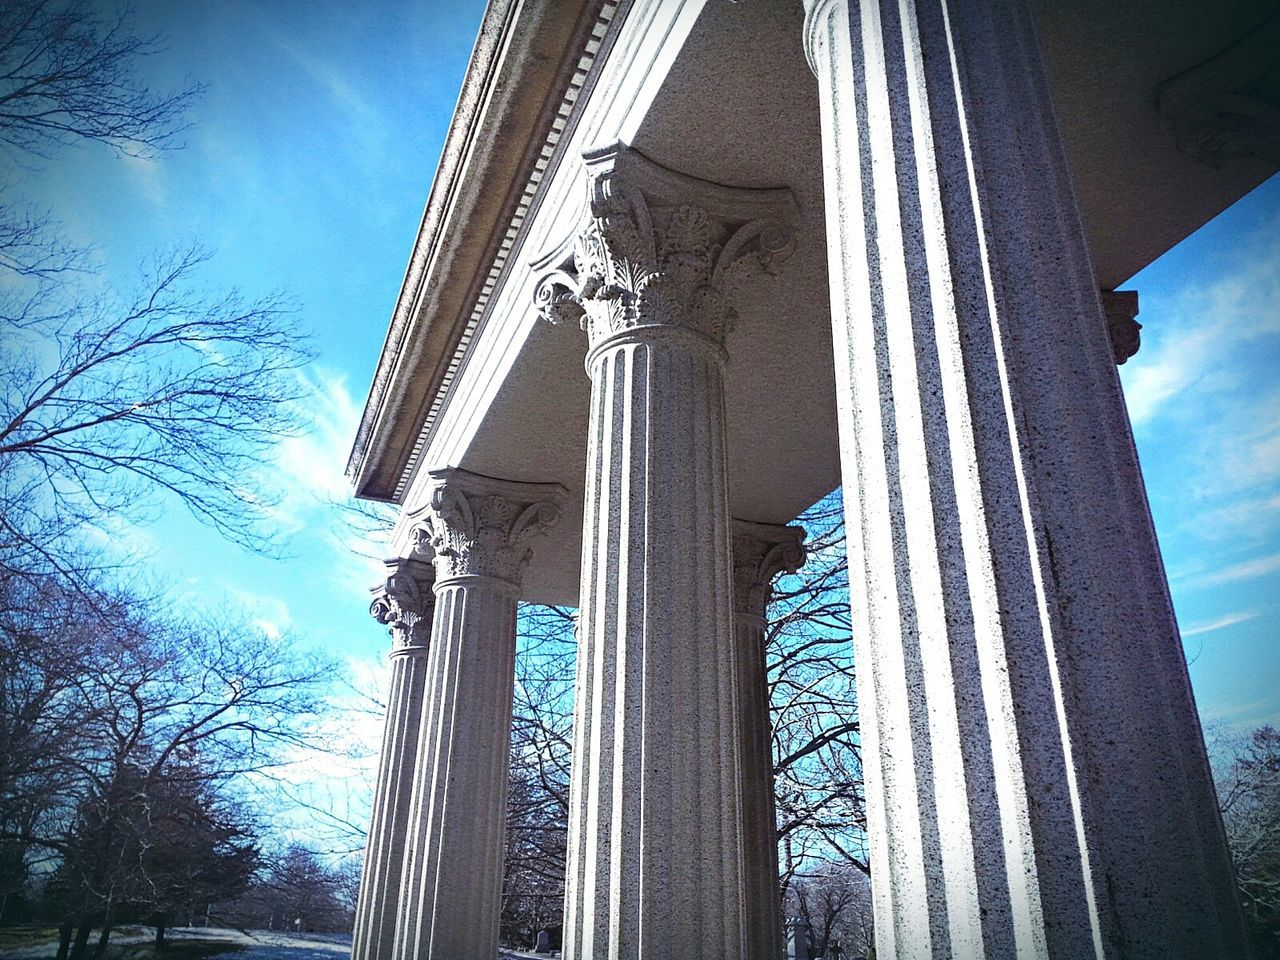 low angle view, architecture, built structure, day, architectural column, sky, no people, outdoors, tree, statue, building exterior, sculpture, nature